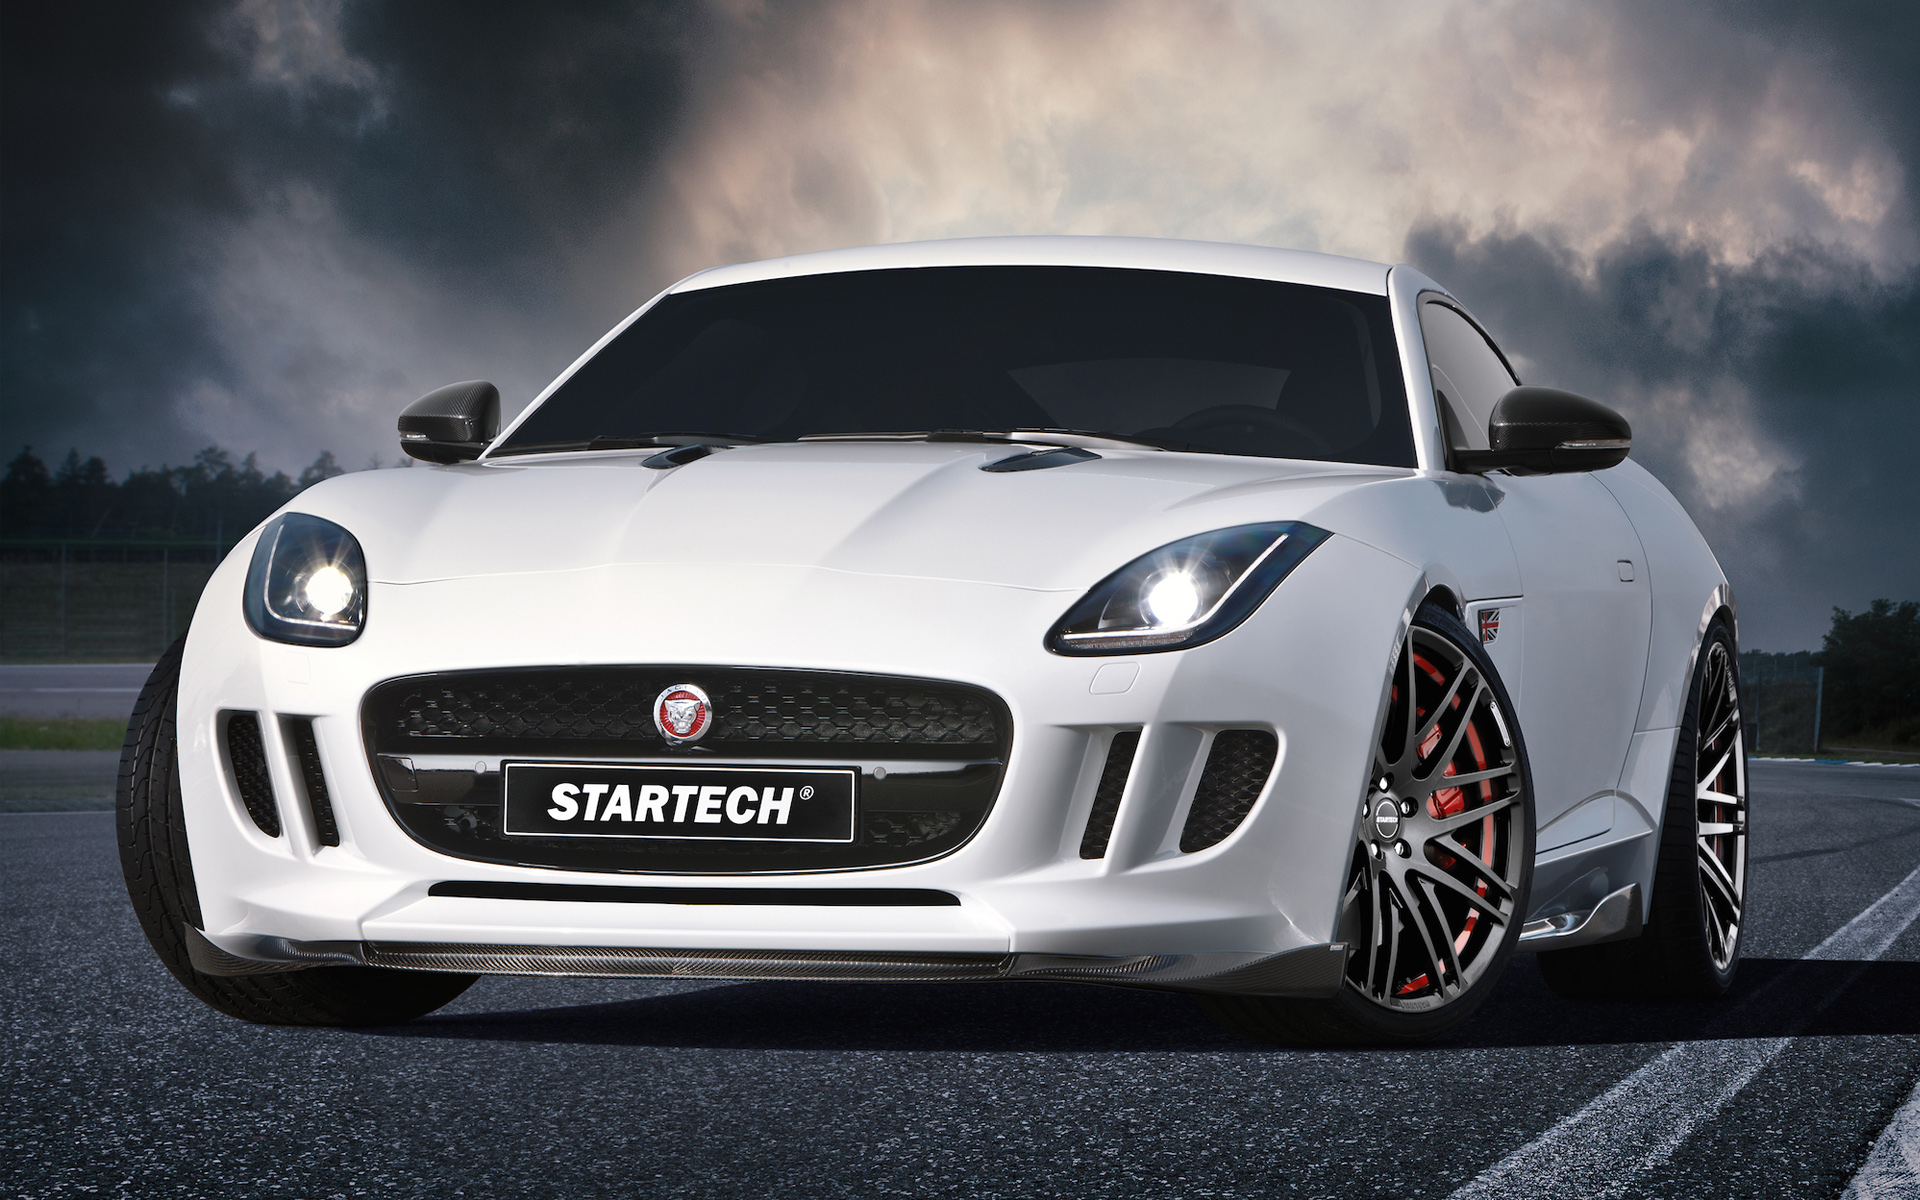 Jaguar Car Wallpaper Wallpapers High Quality: 2015 Startech Jaguar F Type Coupe Wallpaper